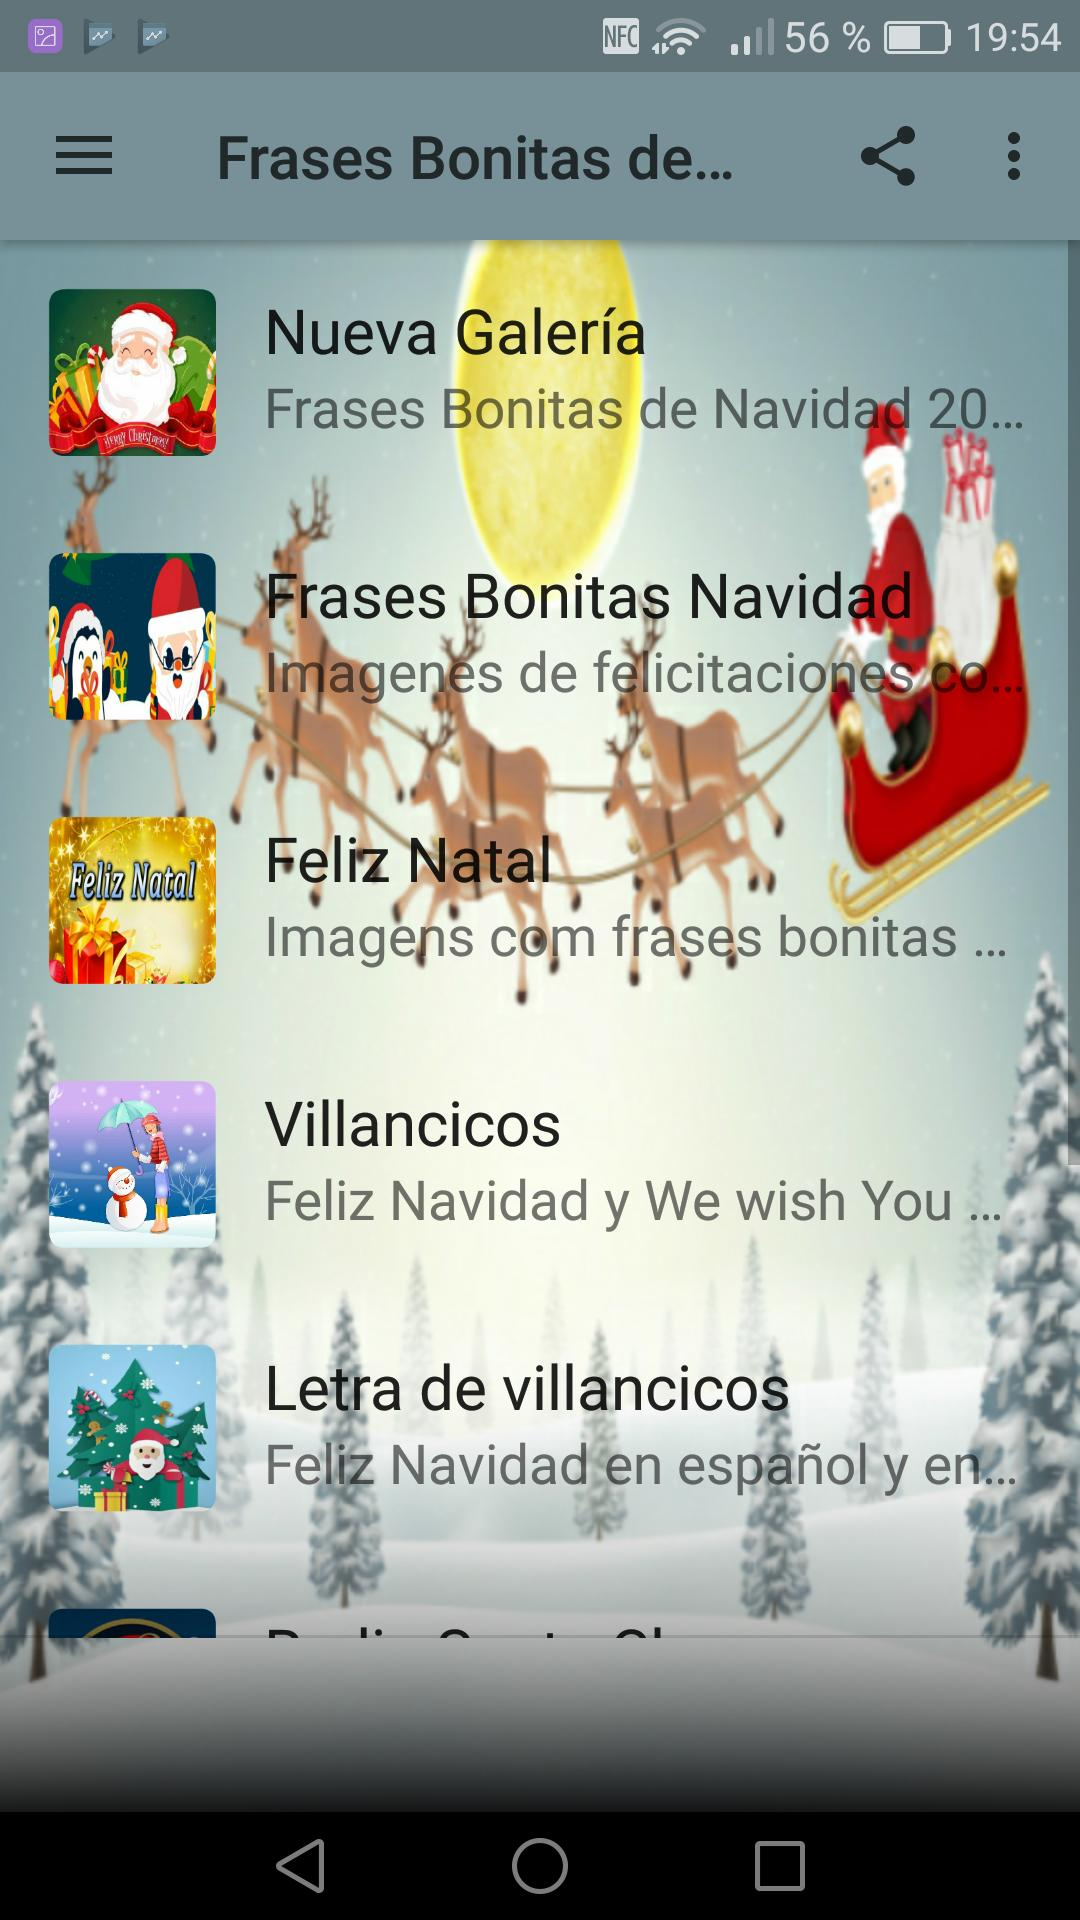 Frases Bonitas De Navidad 2020 For Android Apk Download